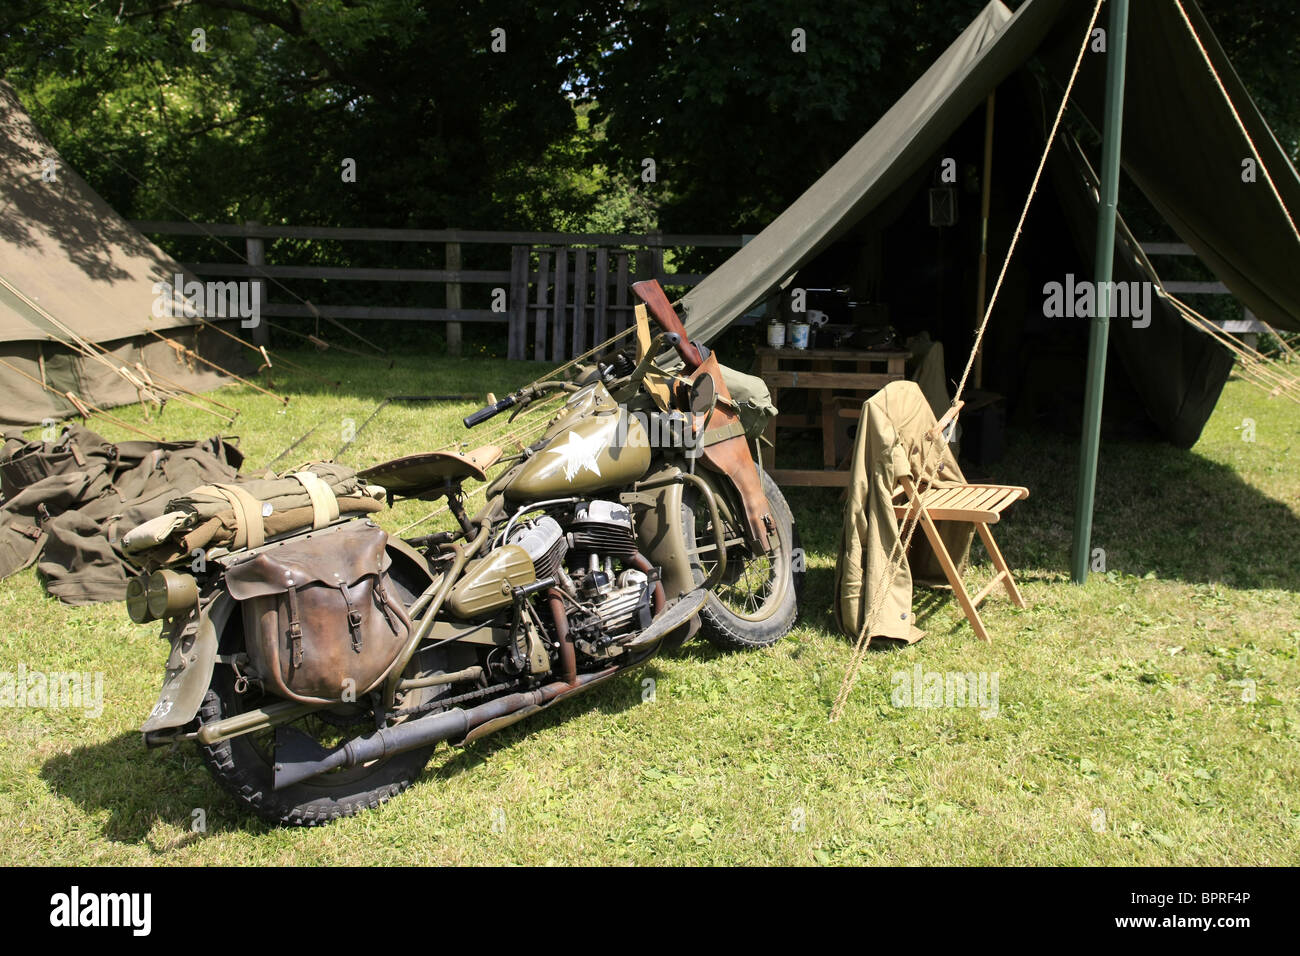 A WW2 US Army Motorcycle parked outside a dispatch tent during a weekend get together & A WW2 US Army Motorcycle parked outside a dispatch tent during a ...